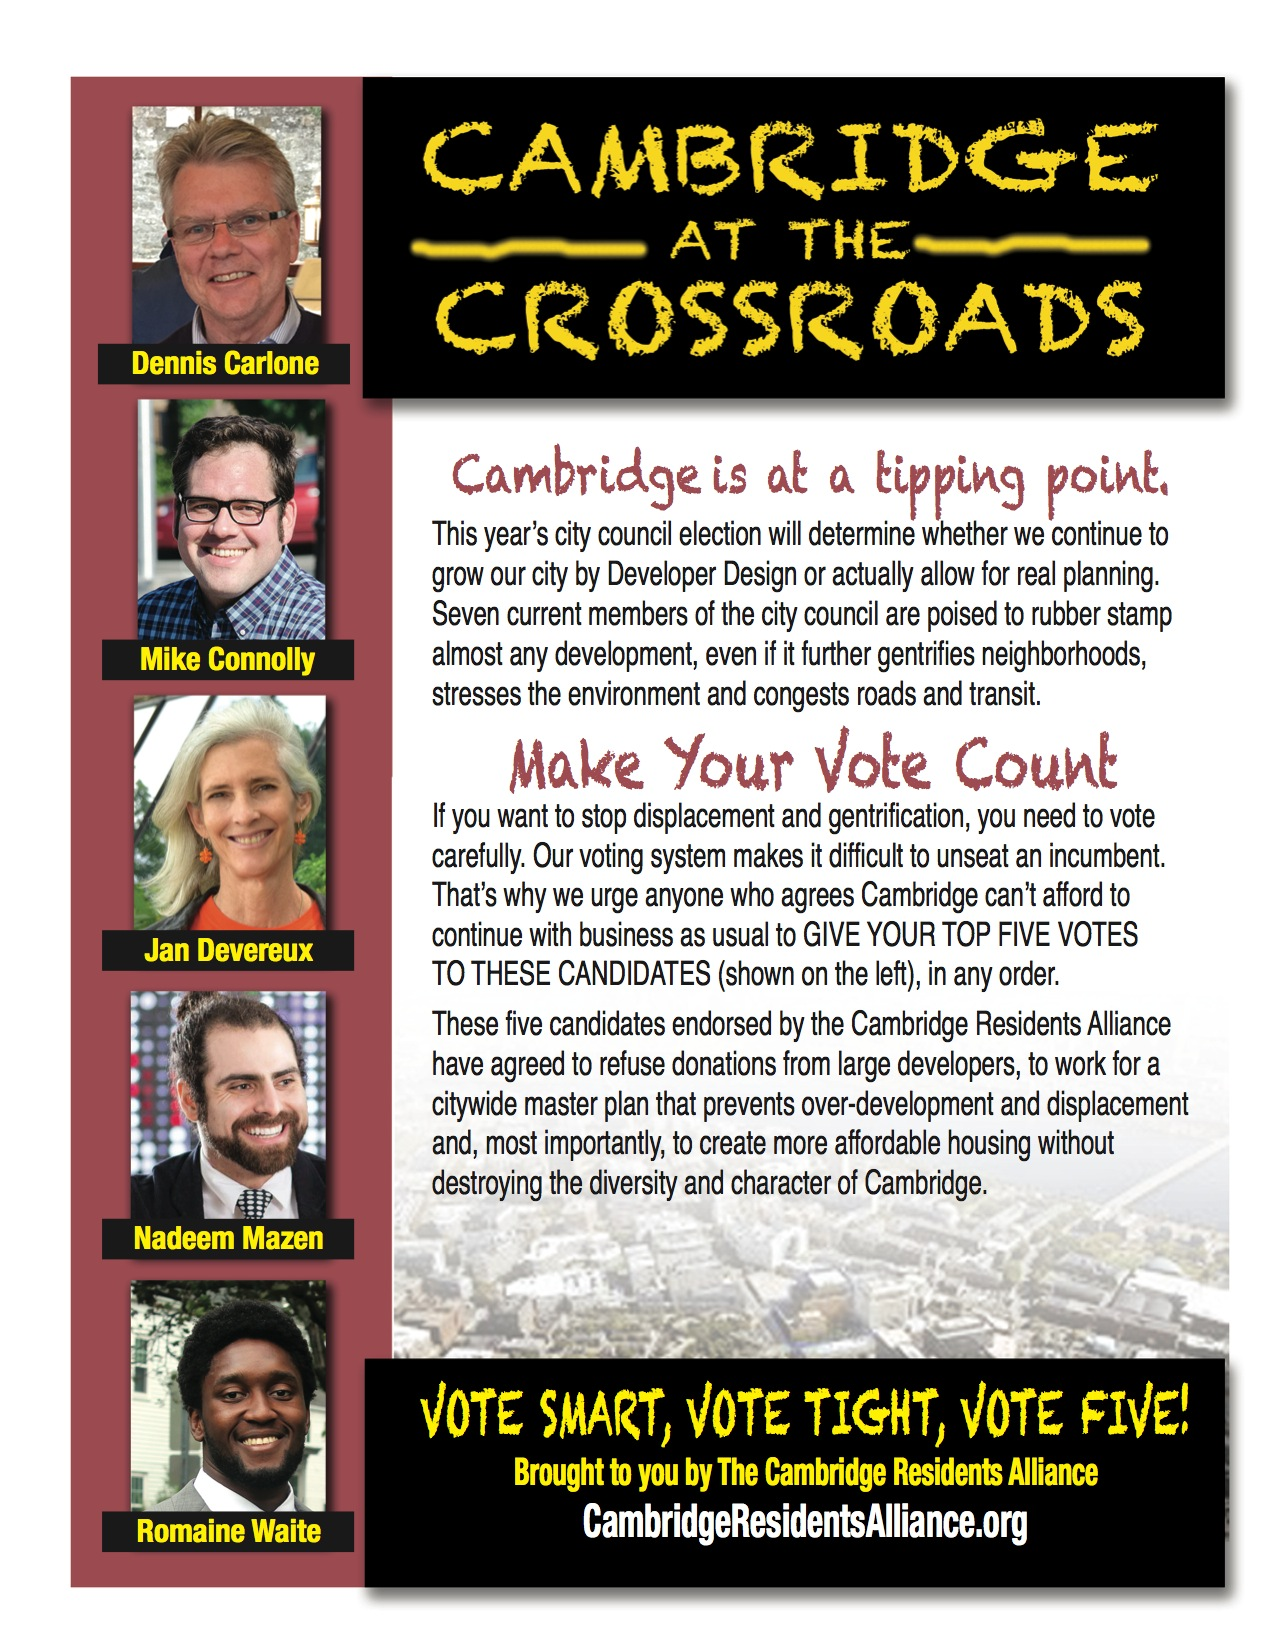 Cambr_Cross_Roads_Flyer_HR_1.jpg